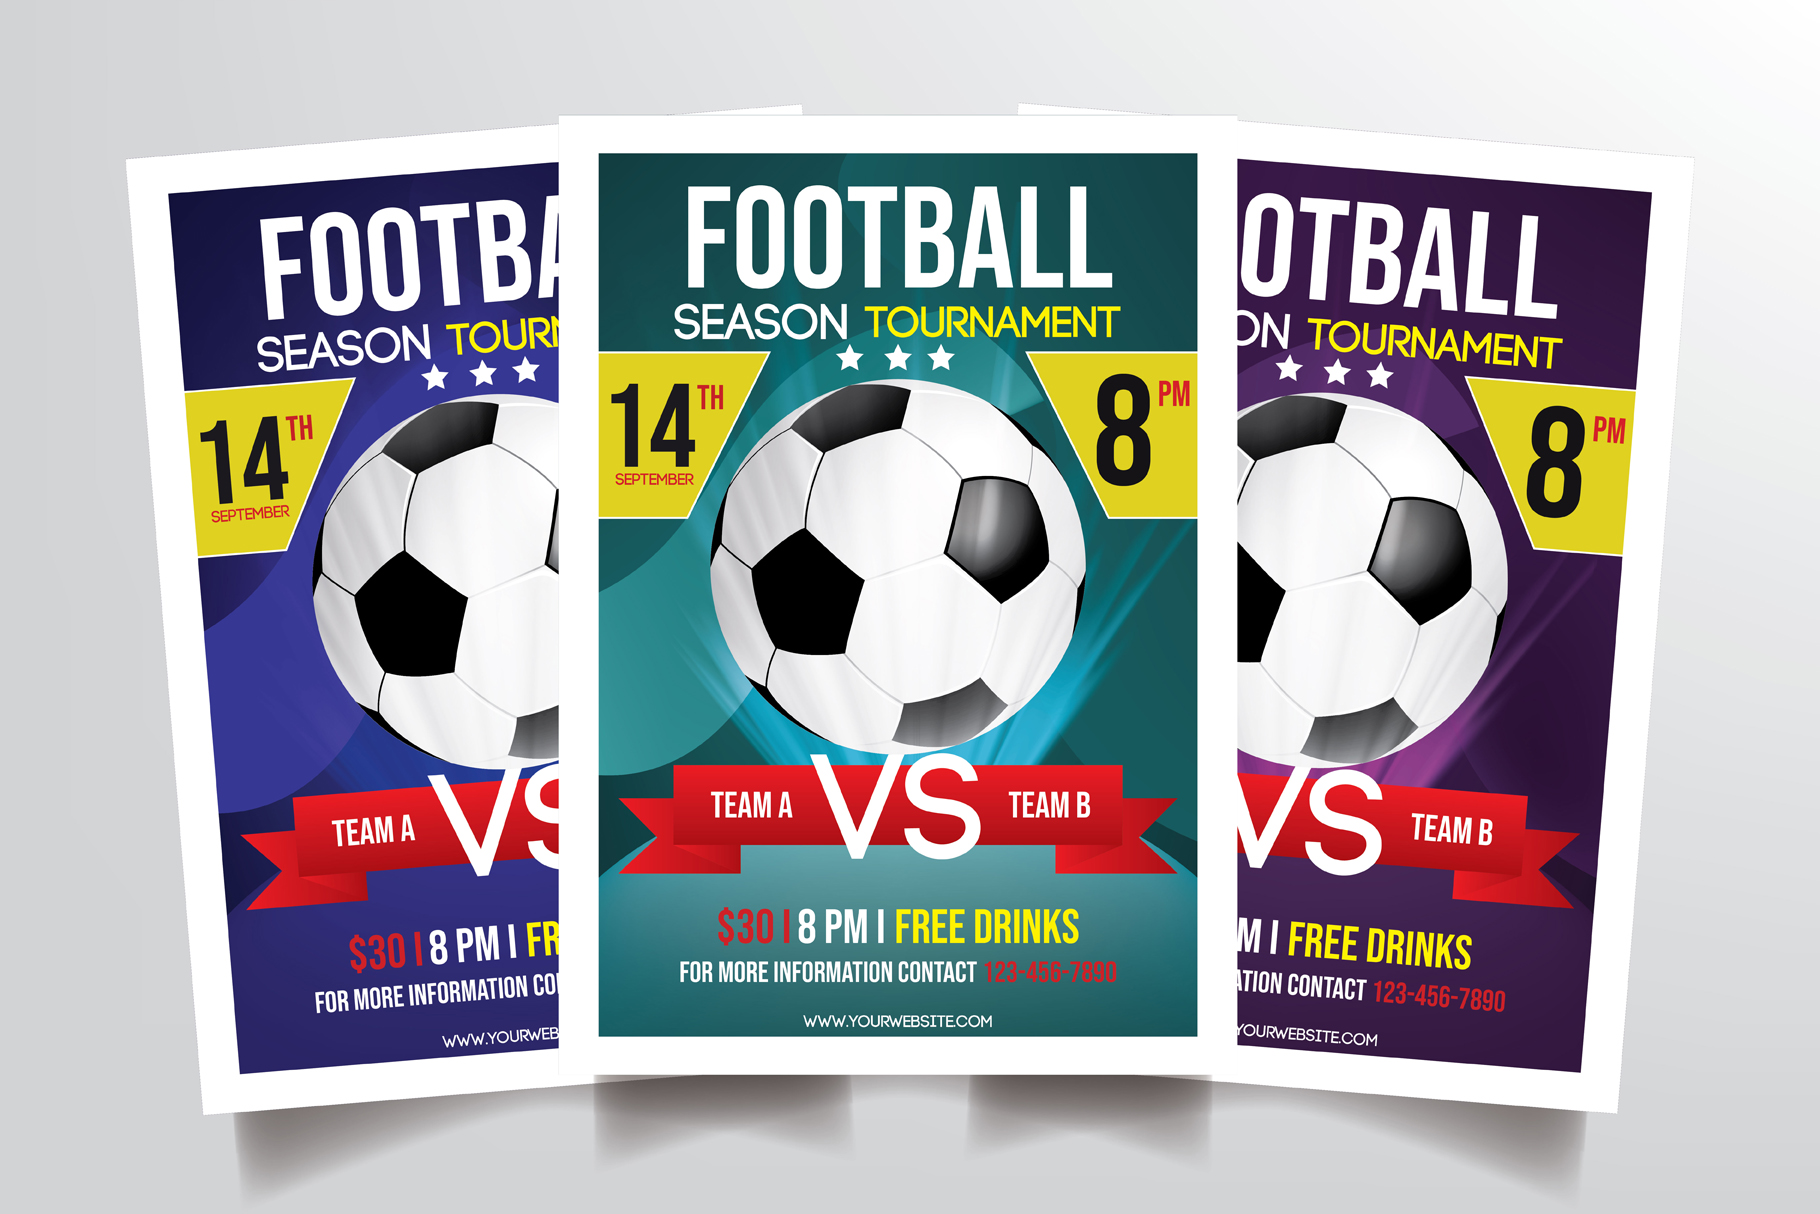 Football Tournament Flyer Template example image 1